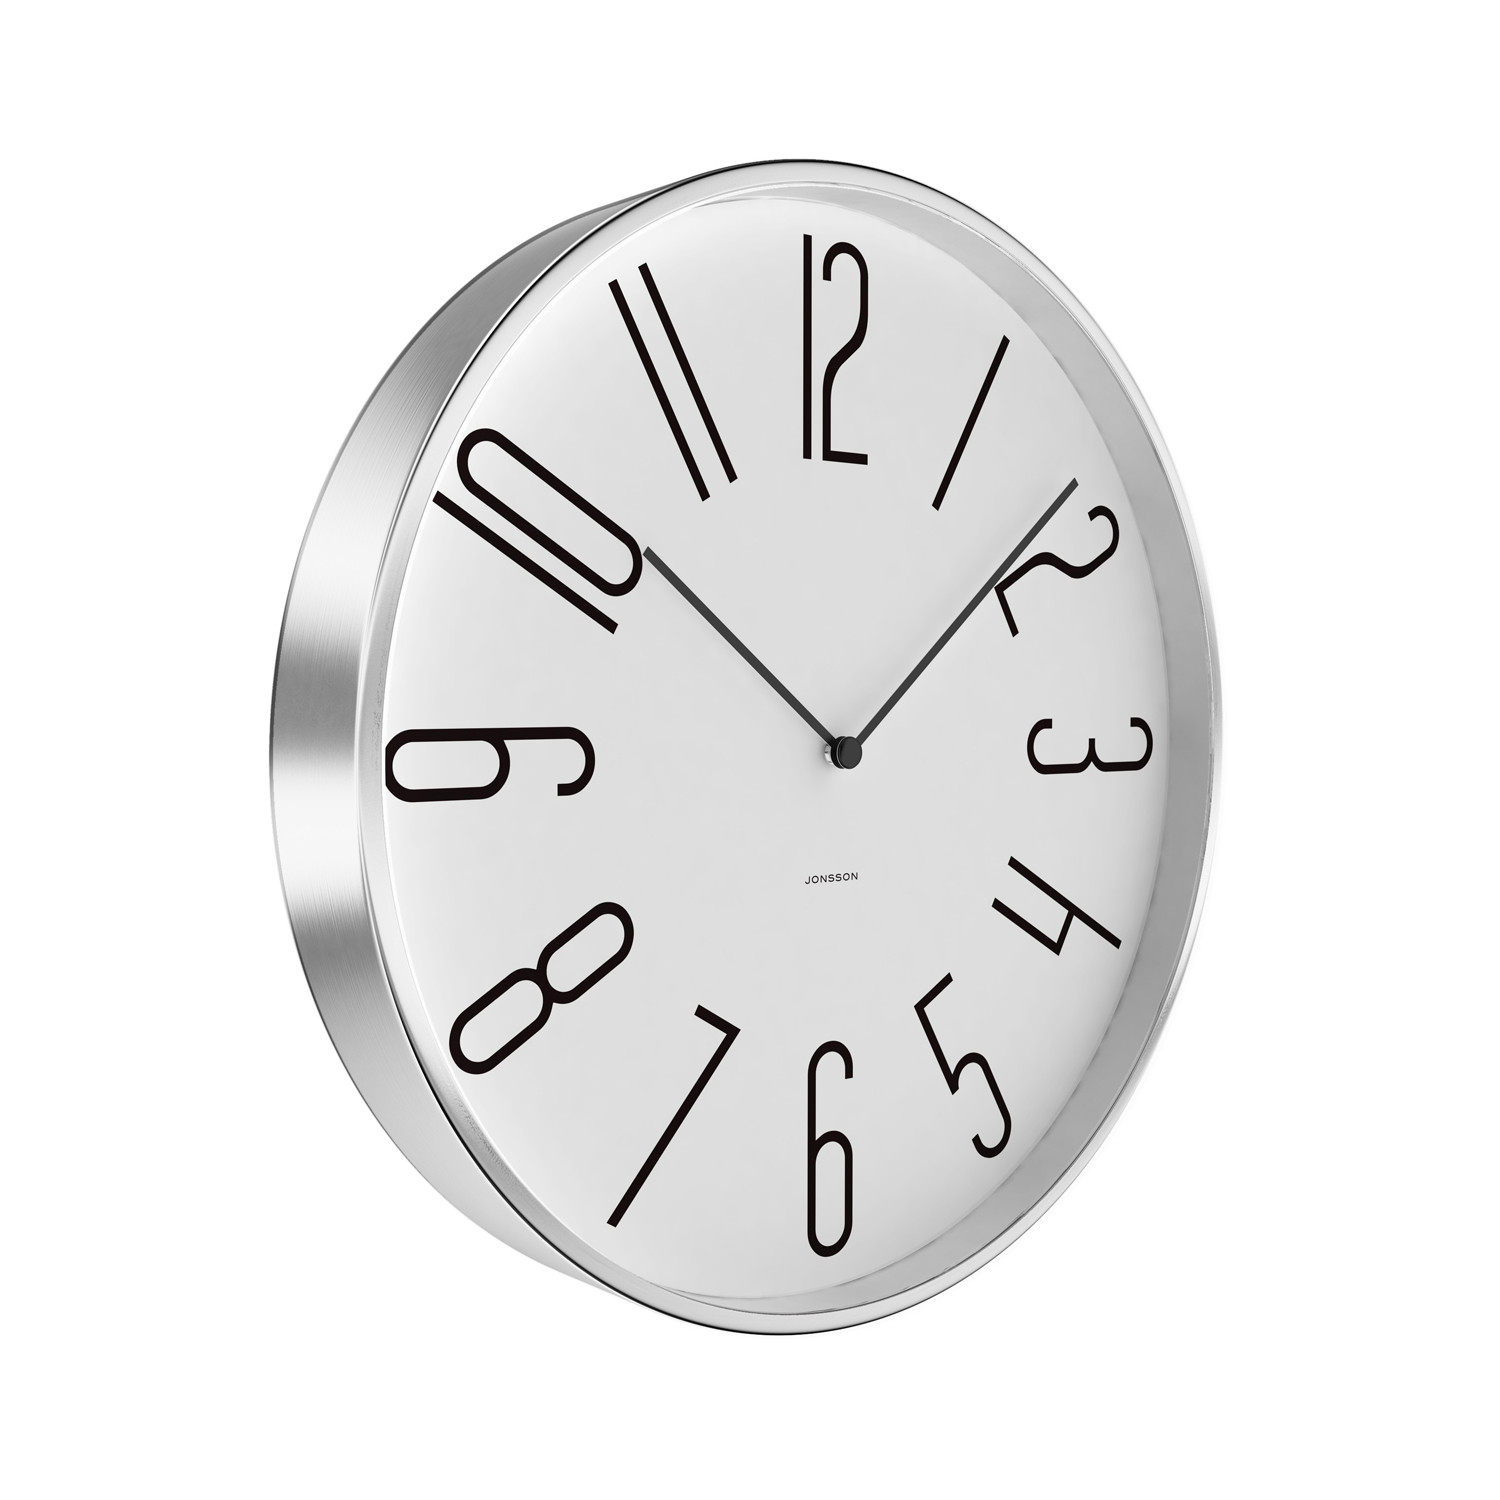 Wall clock schoolhouse jonsson touch of modern for Touch of modern clock